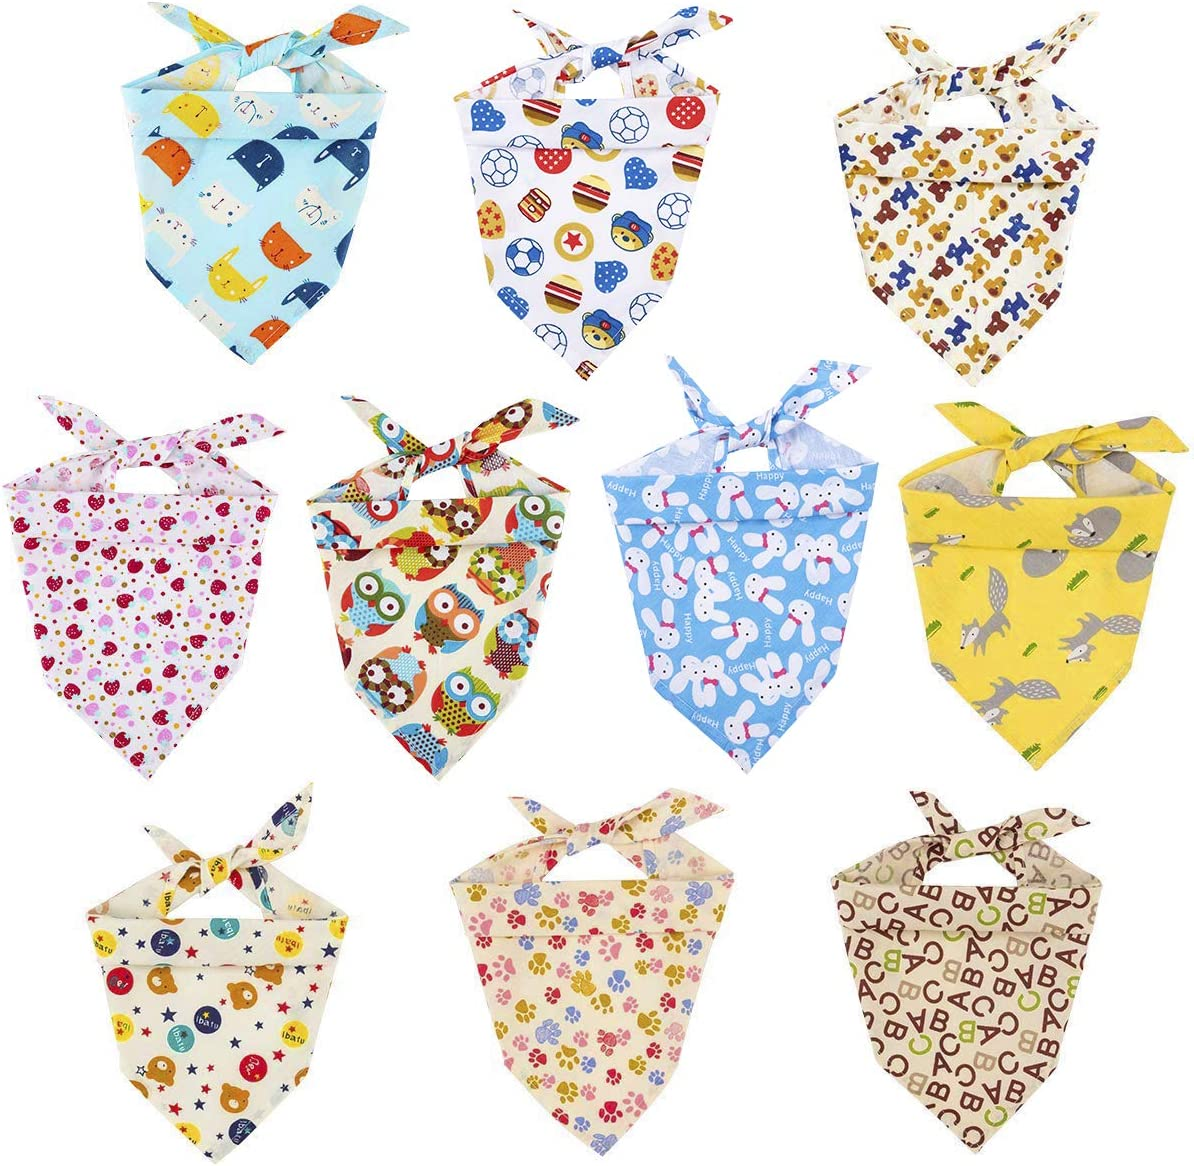 MEWTOGO 10 Pack Dog Bibs - Washable and Reversible Triangle Cotton Dog Bibs Scarf Assortment Suitable for Puppy Small and Medium Pet